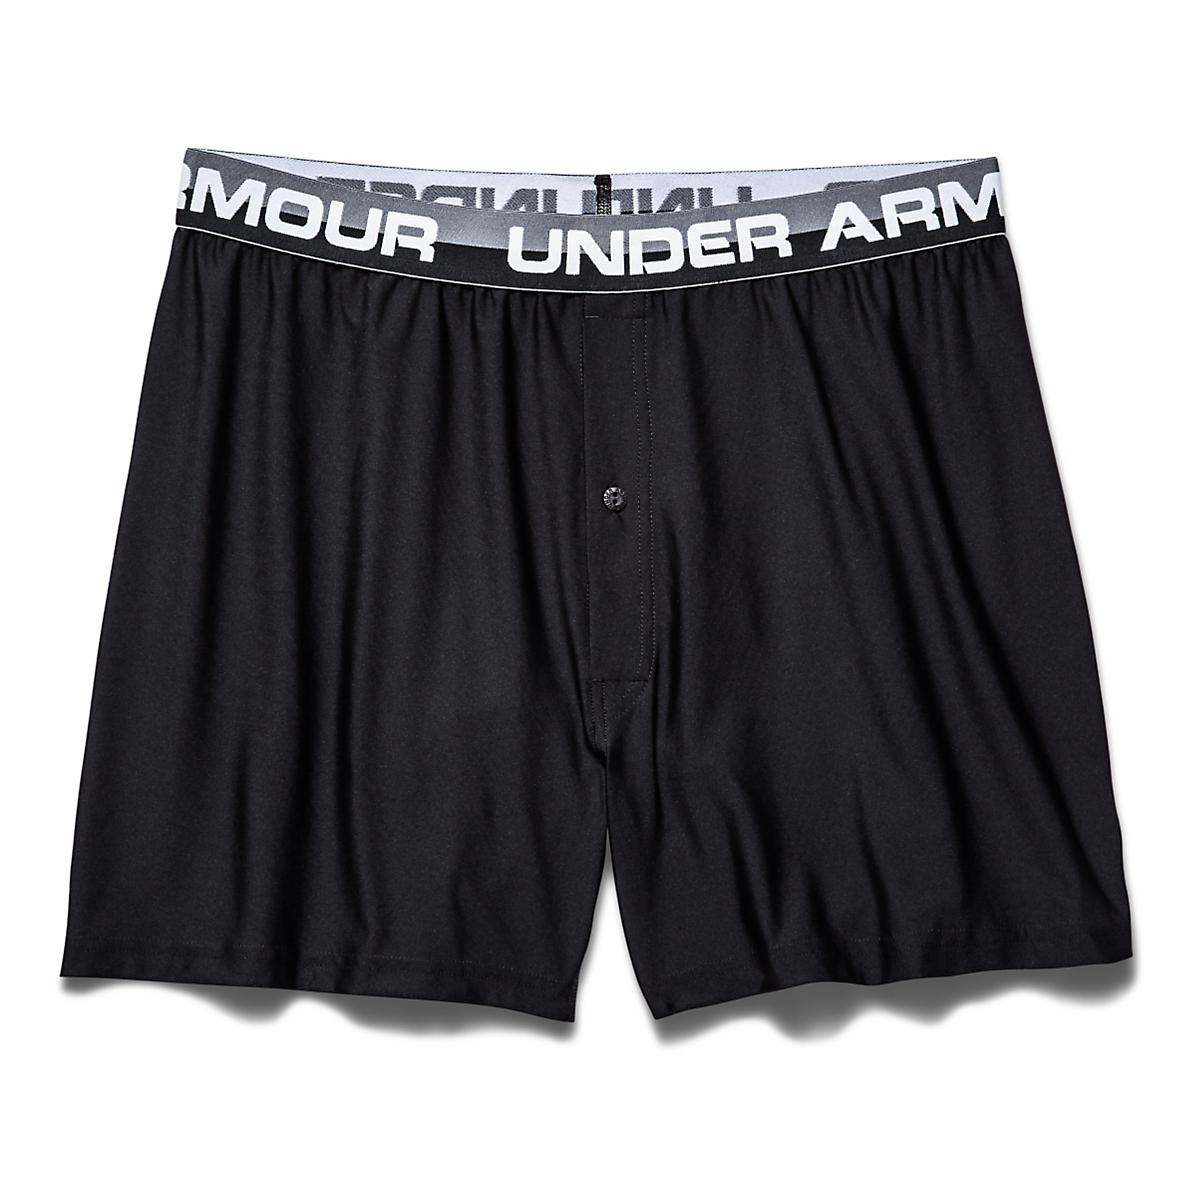 Men's Under Armour�Original Series Boxer (Boxed)